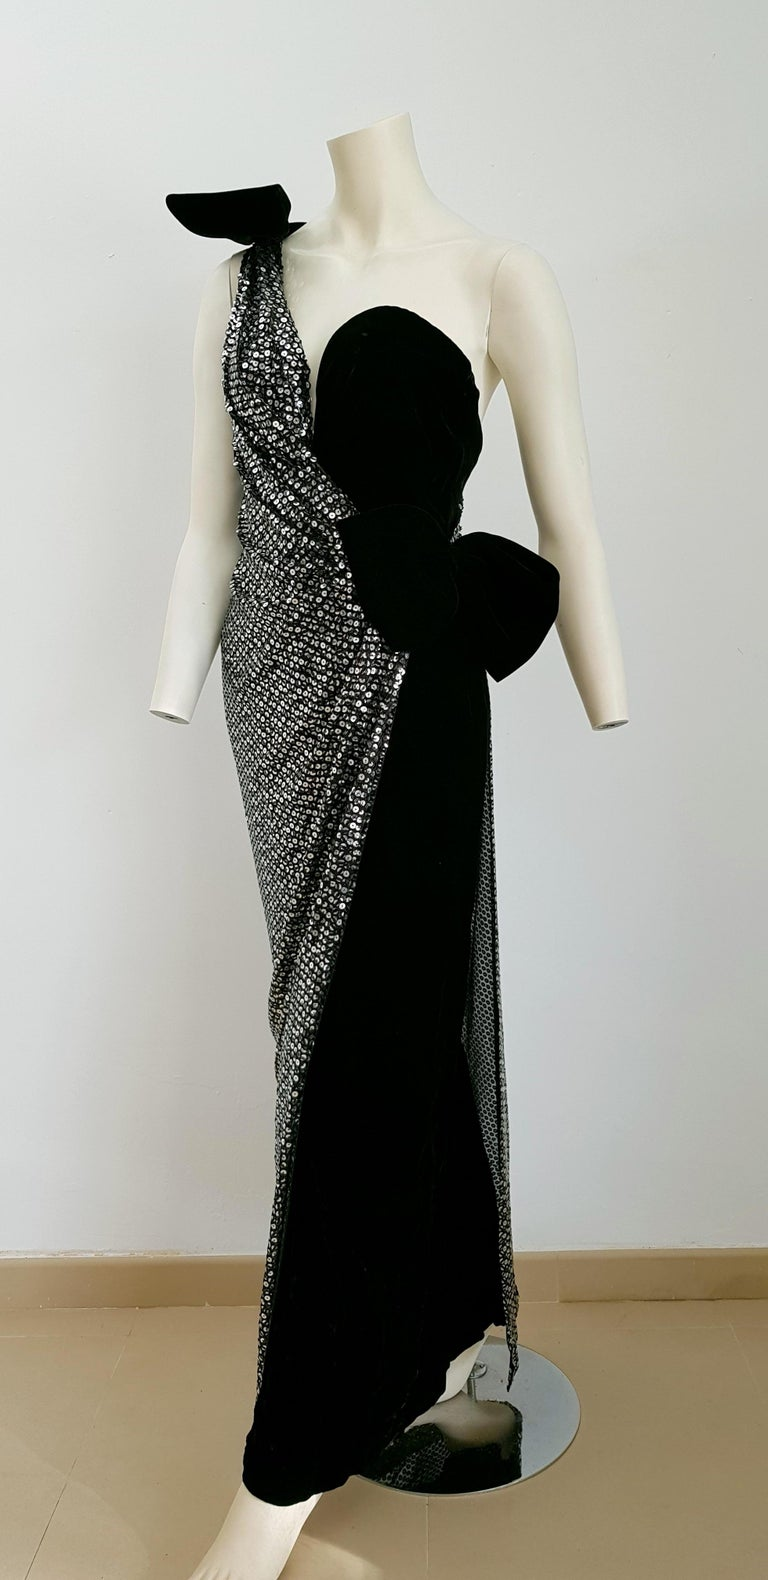 Women's VALENTINO Haute Couture, sequins, silk velvet, black gown dress - Unworn, New For Sale